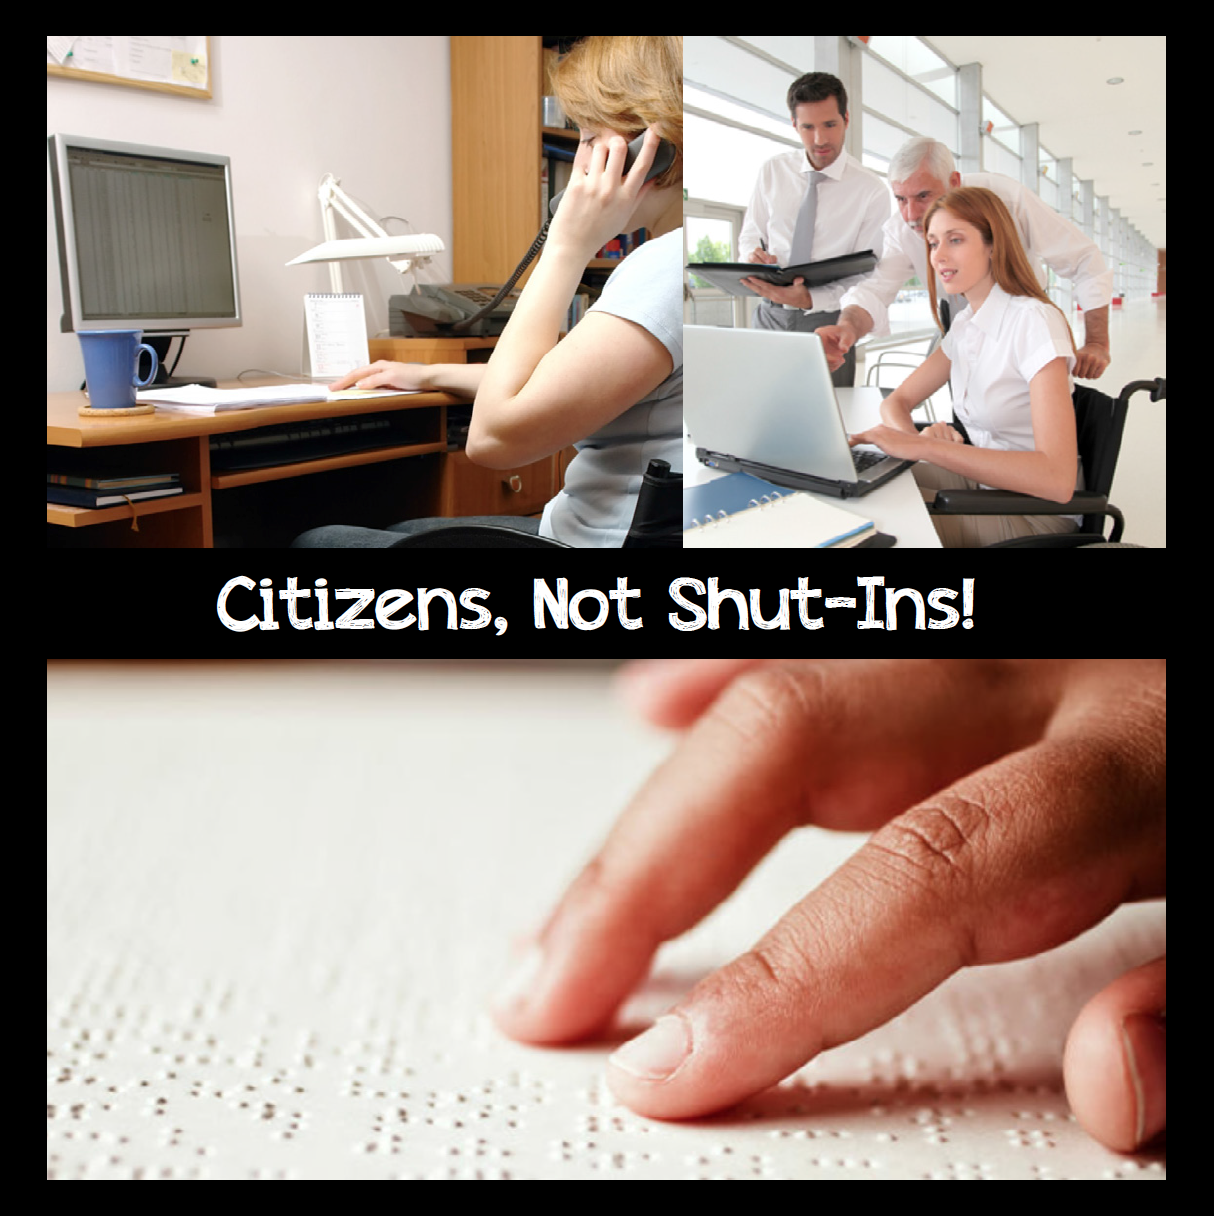 Citizens, Not Shut-Ins!